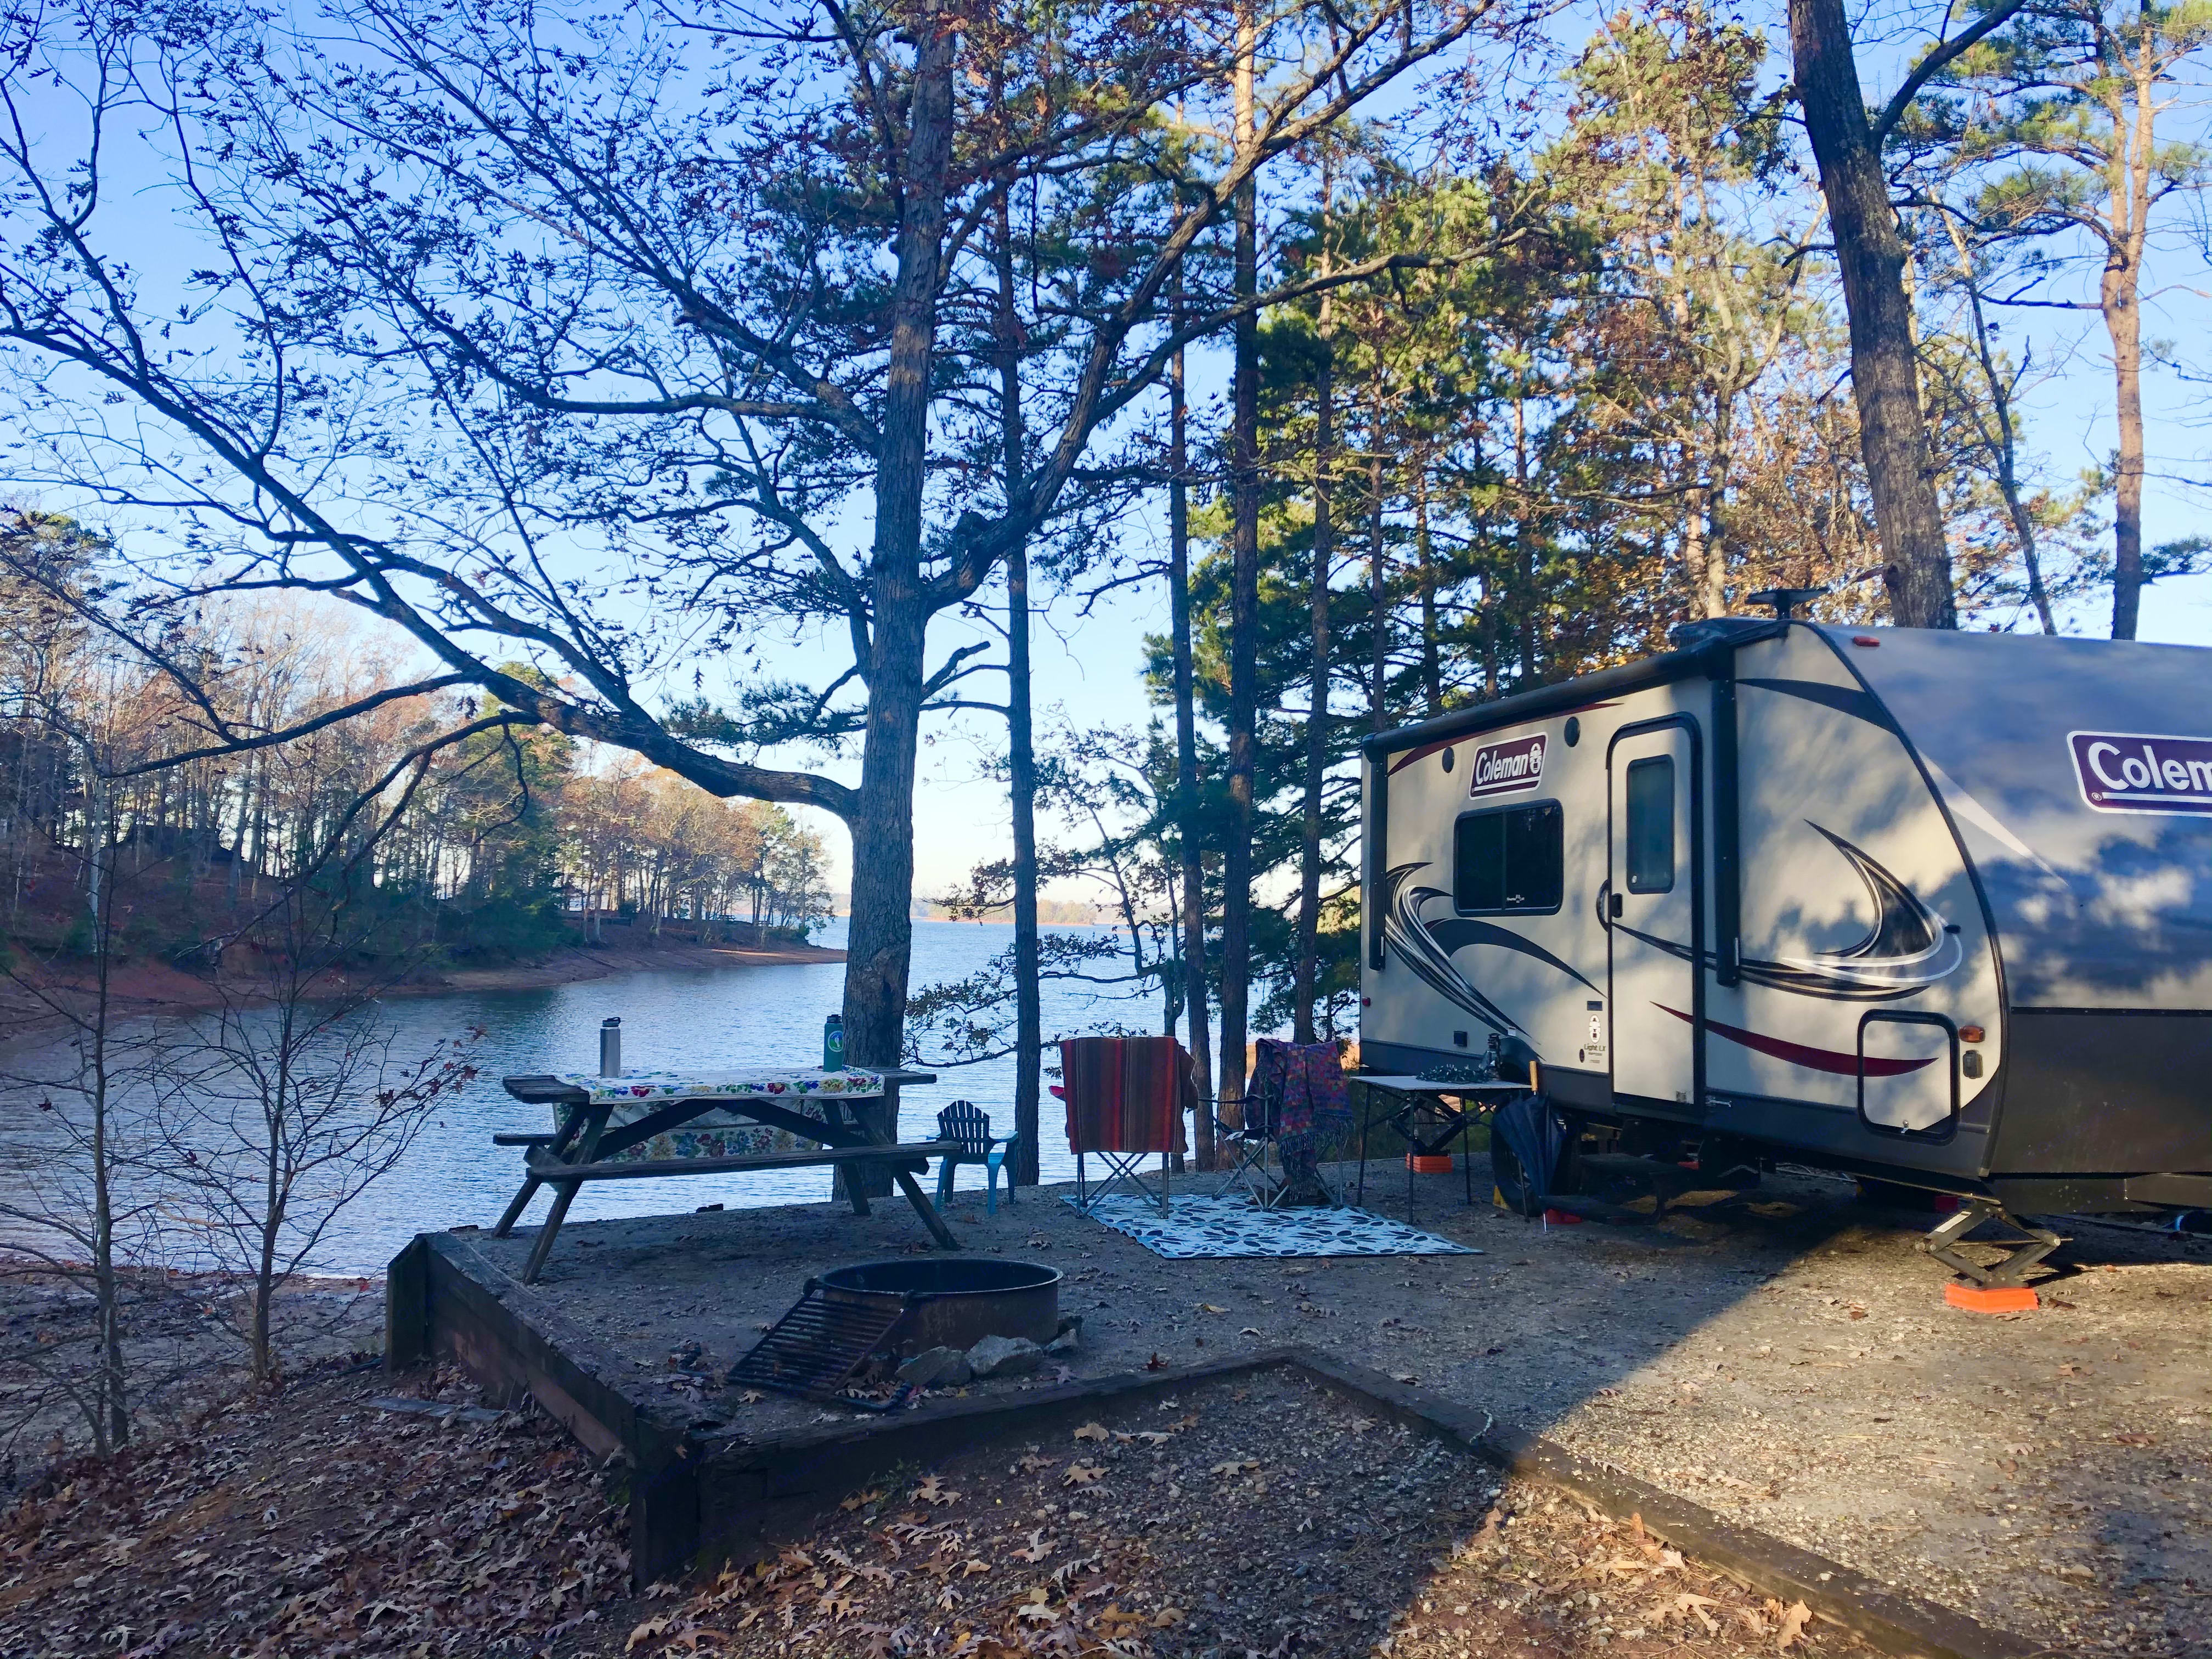 Camping at Sadler's Creek Campground. Coleman Light LX 1705rb 2019